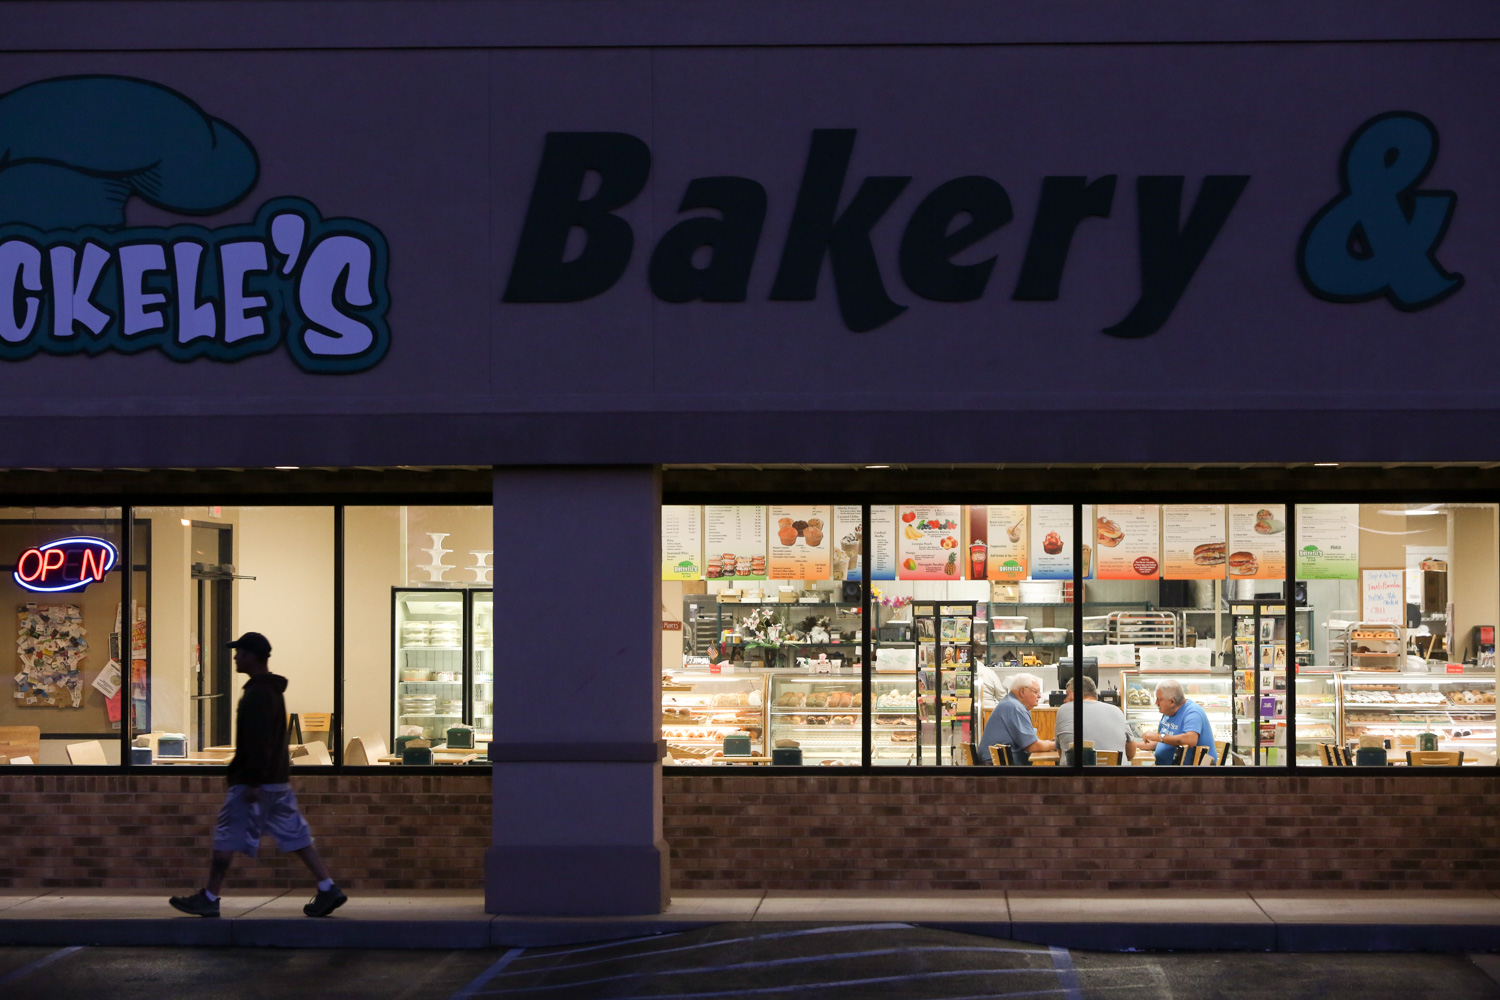 A patron exits the Hoeckele's bakery, an establishment that has been in operation since 1937. The bakery opens at 3:00AM – typically to a line of faithful patrons.